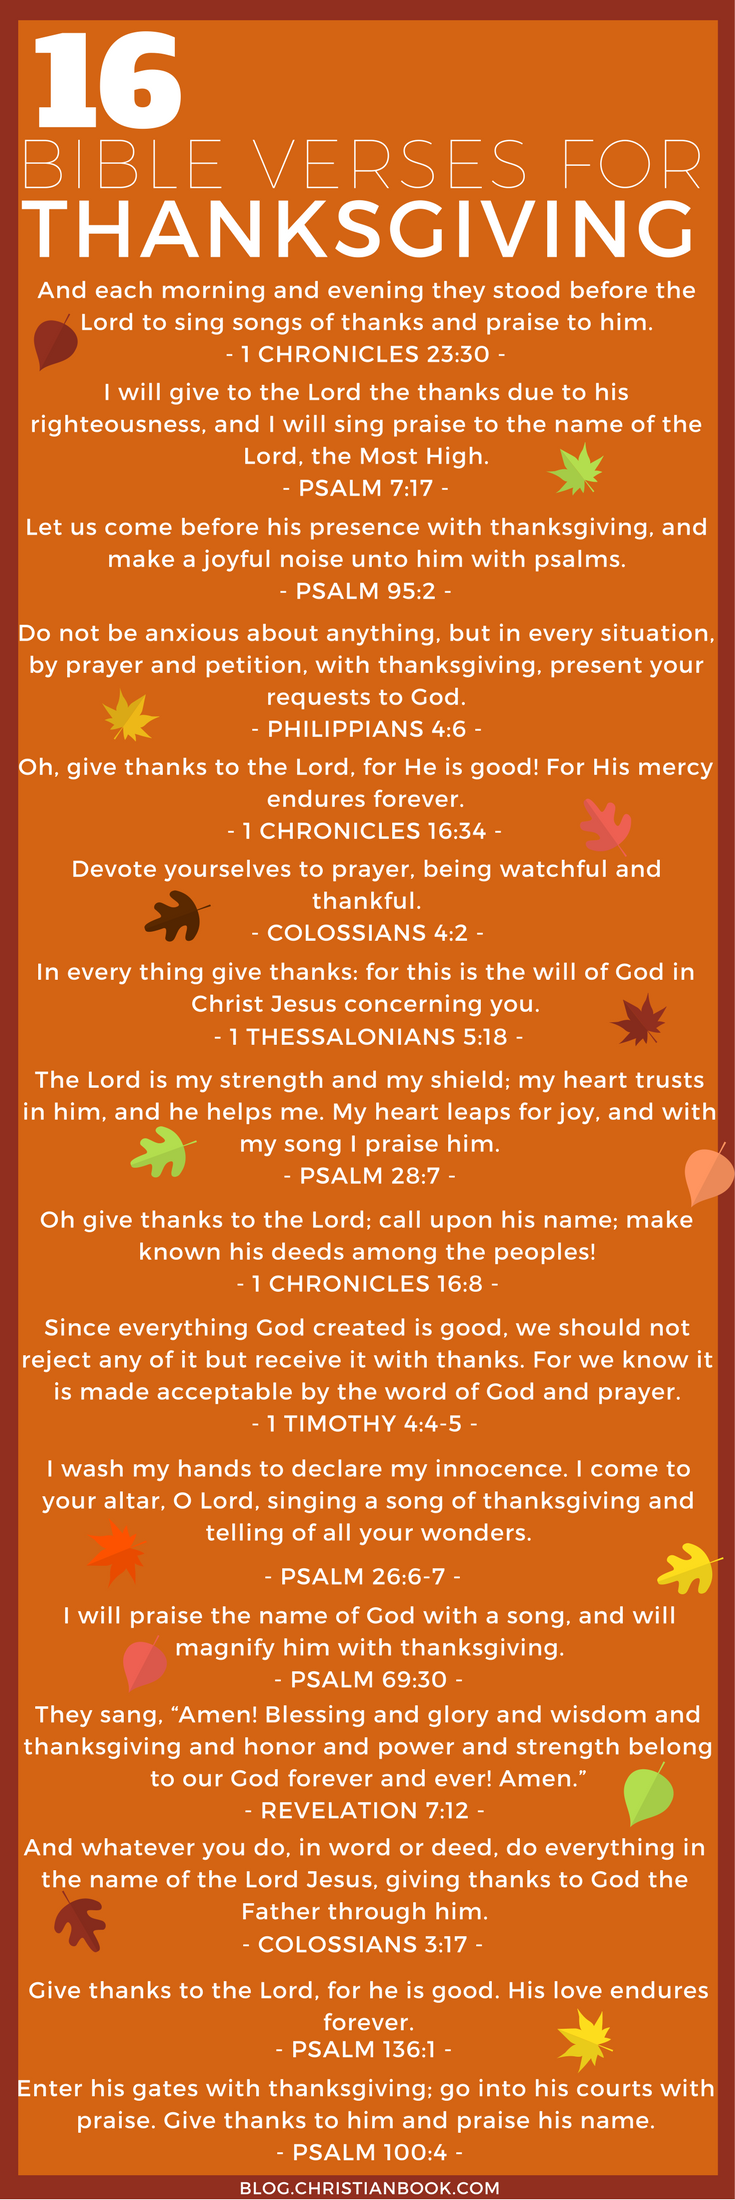 16 Bible Verses for Thanksgiving | thanksgiving ideas | Pinterest